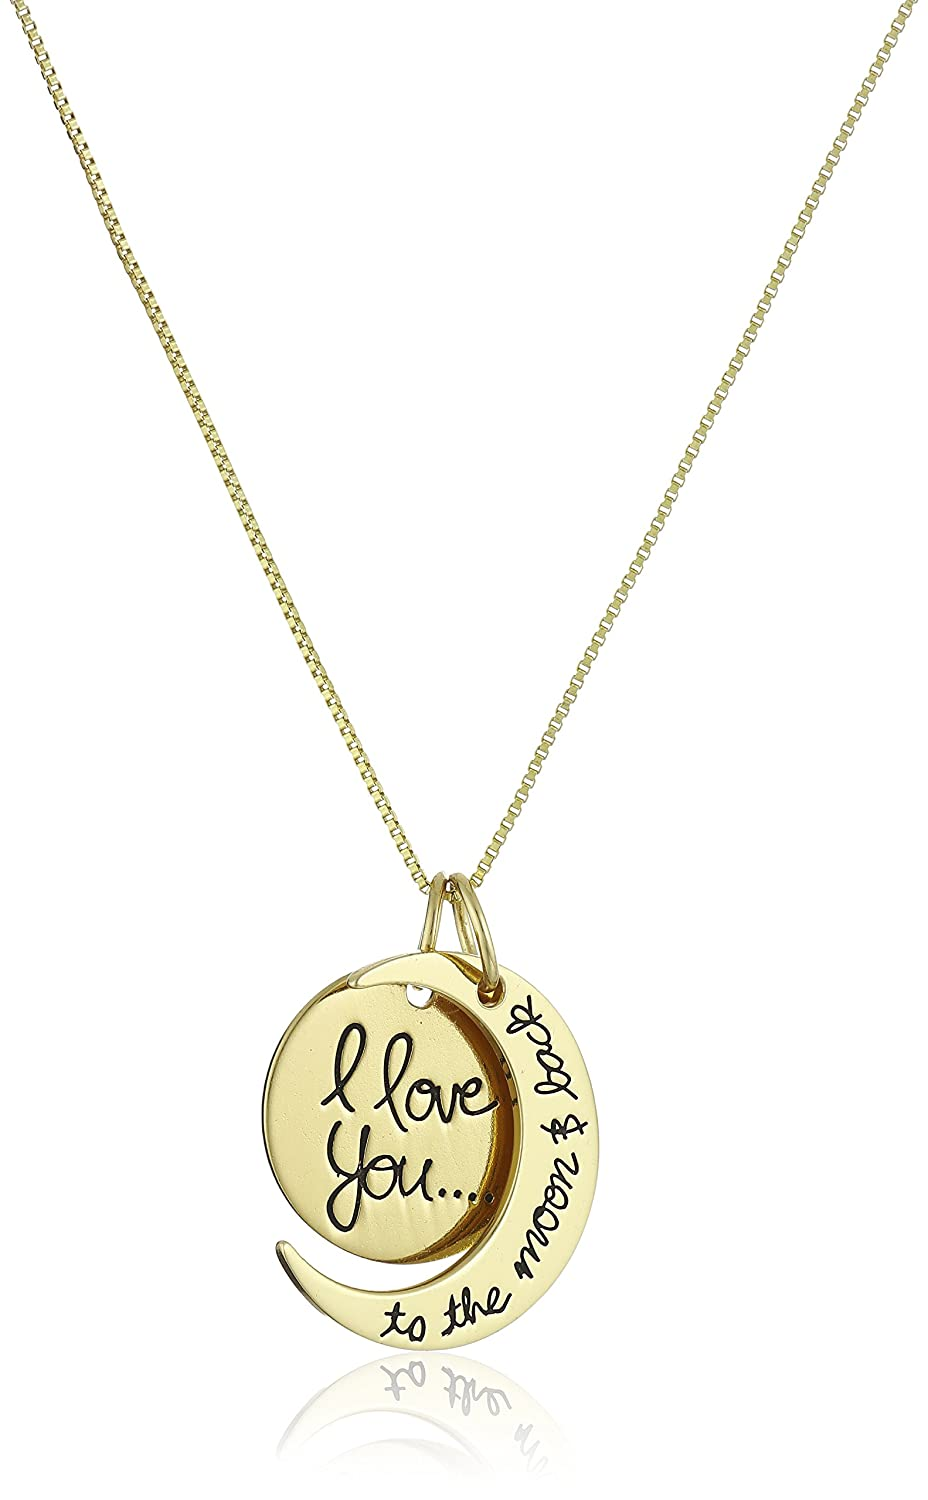 Sterling Silver Yellow Gold Flashed I Love You To The Kalung Moon And Back Two Piece Pendant Necklace 18 Jewelry